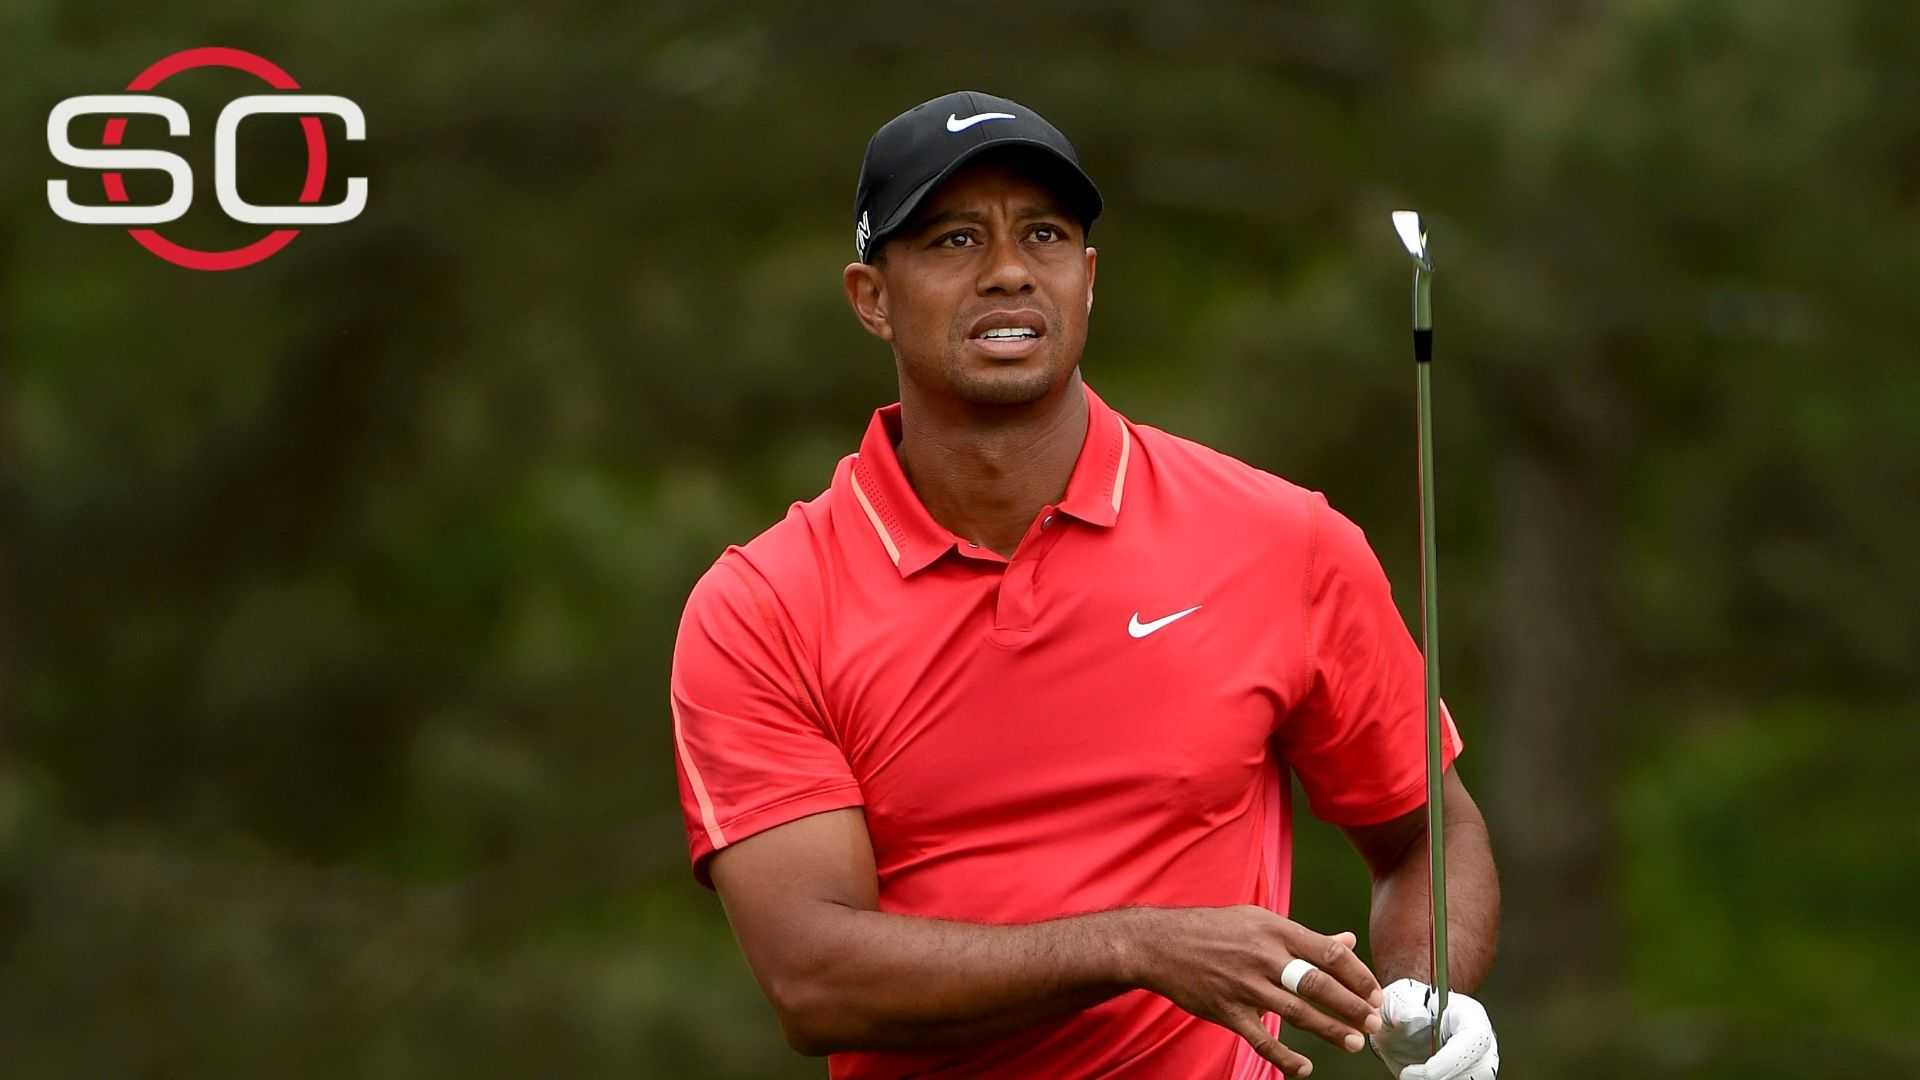 https://secure.espncdn.com/combiner/i?img=/media/motion/2016/0401/dm_160401_Woods_will_skip_the_Masters/dm_160401_Woods_will_skip_the_Masters.jpg